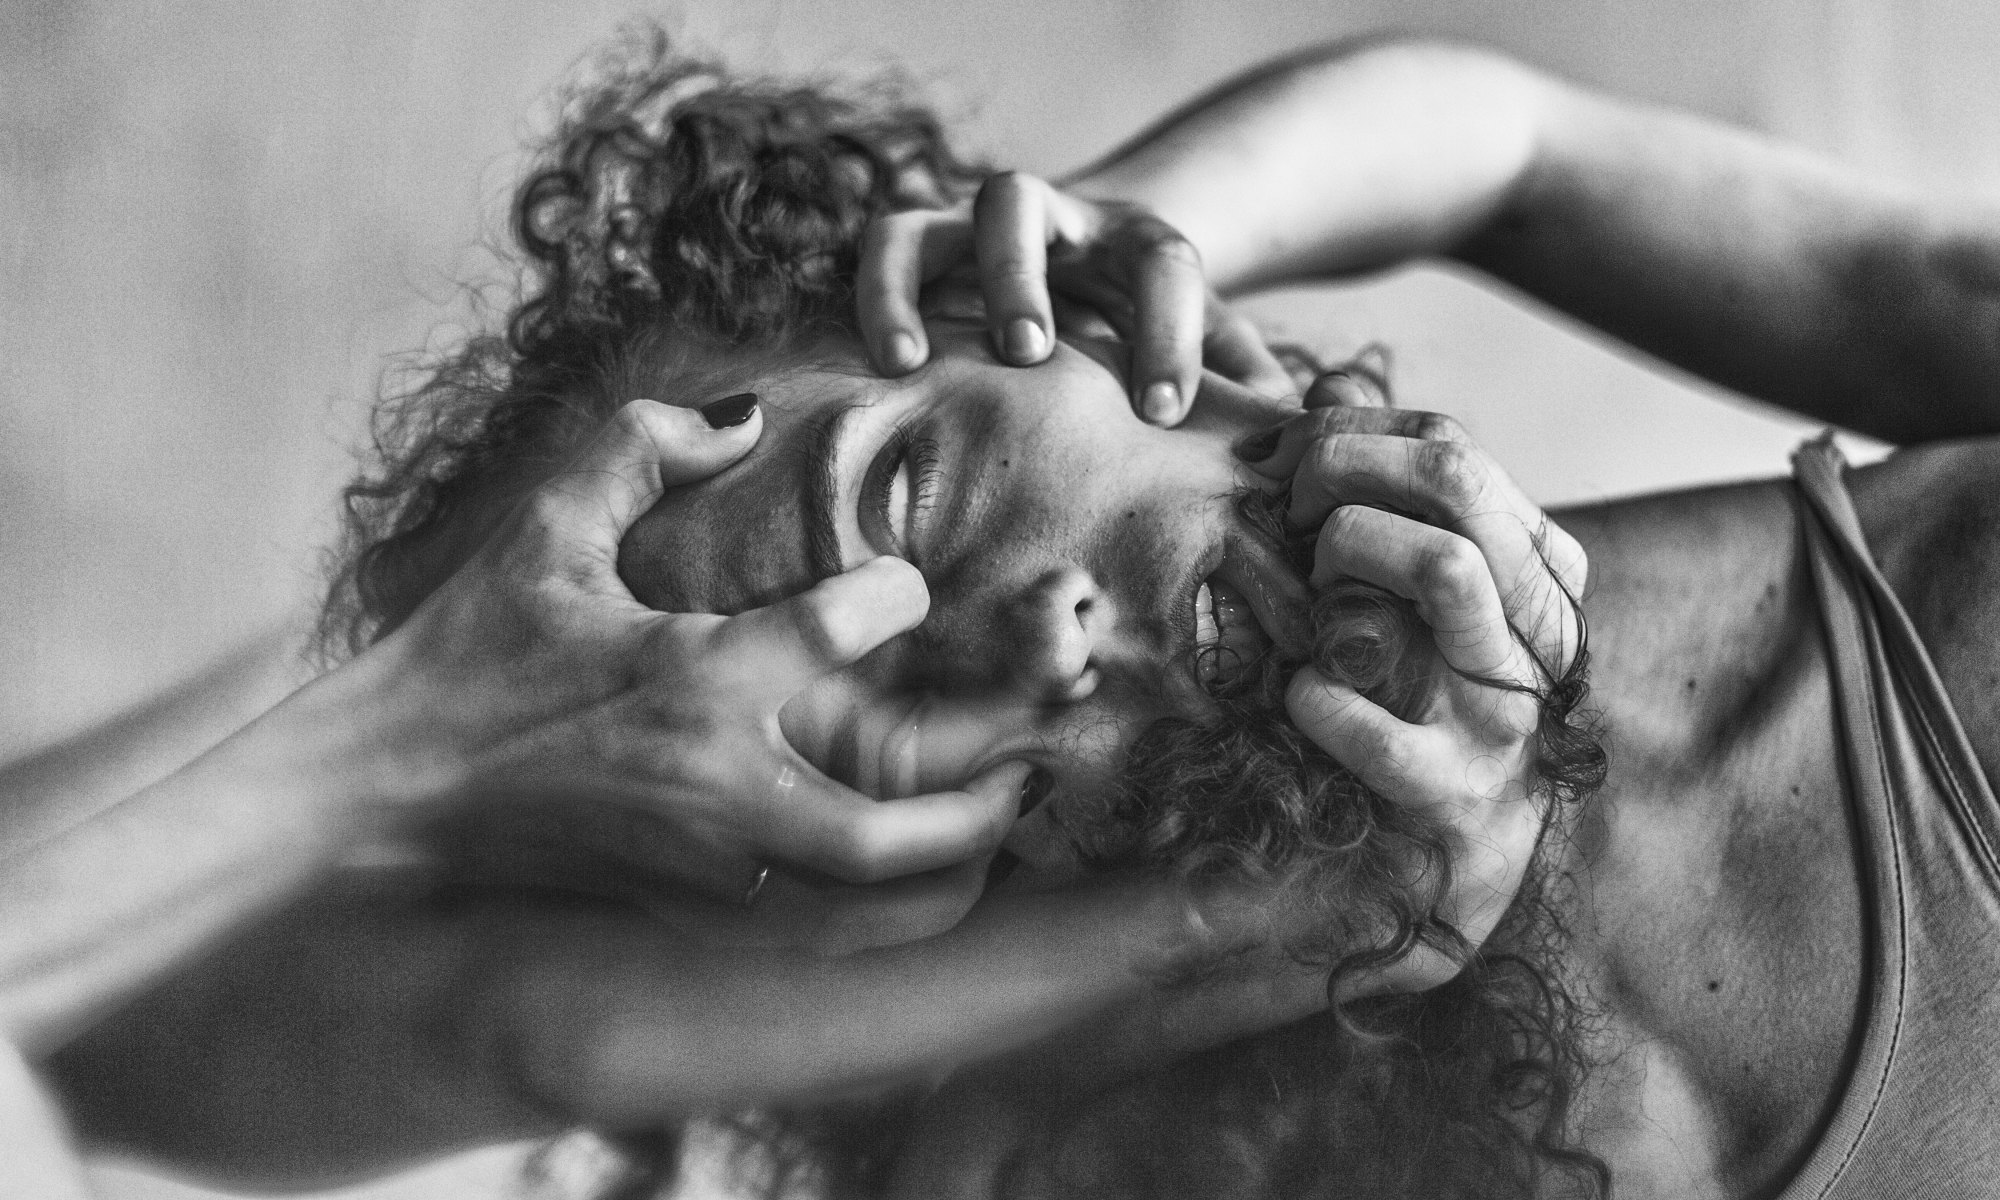 Three hands on man's face experiencing depersonalization disorder